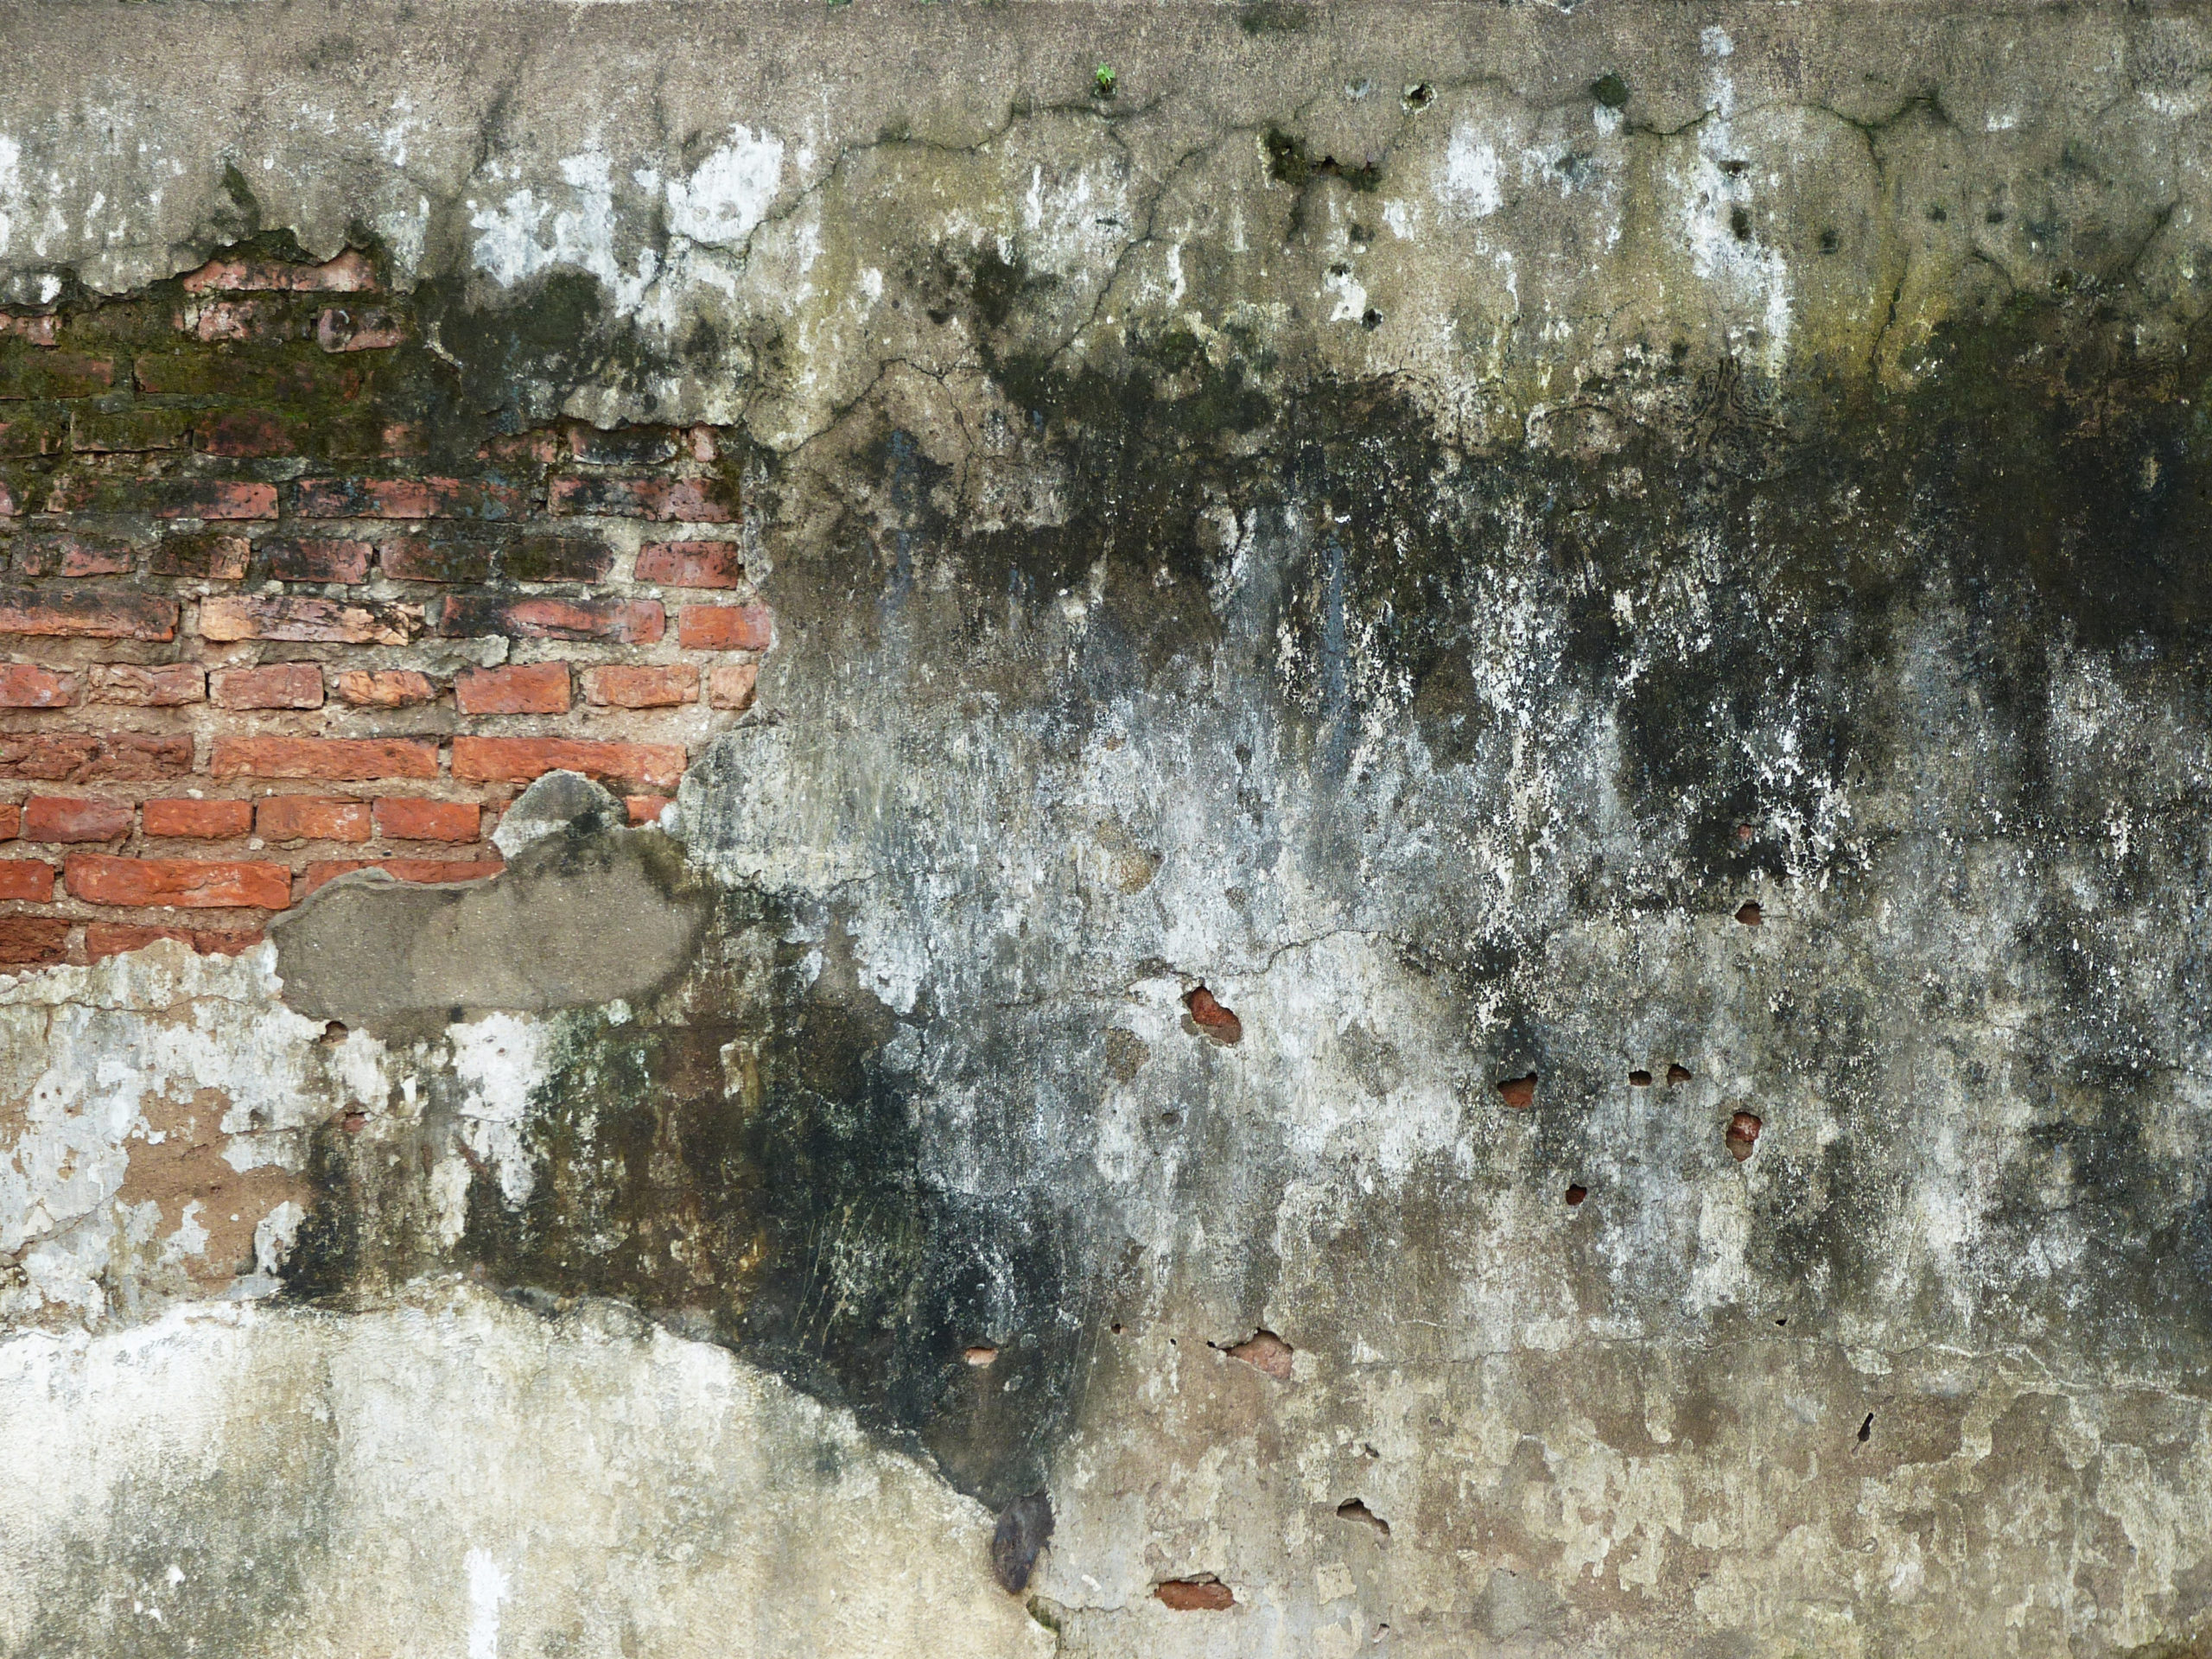 grunge wall with mold texture